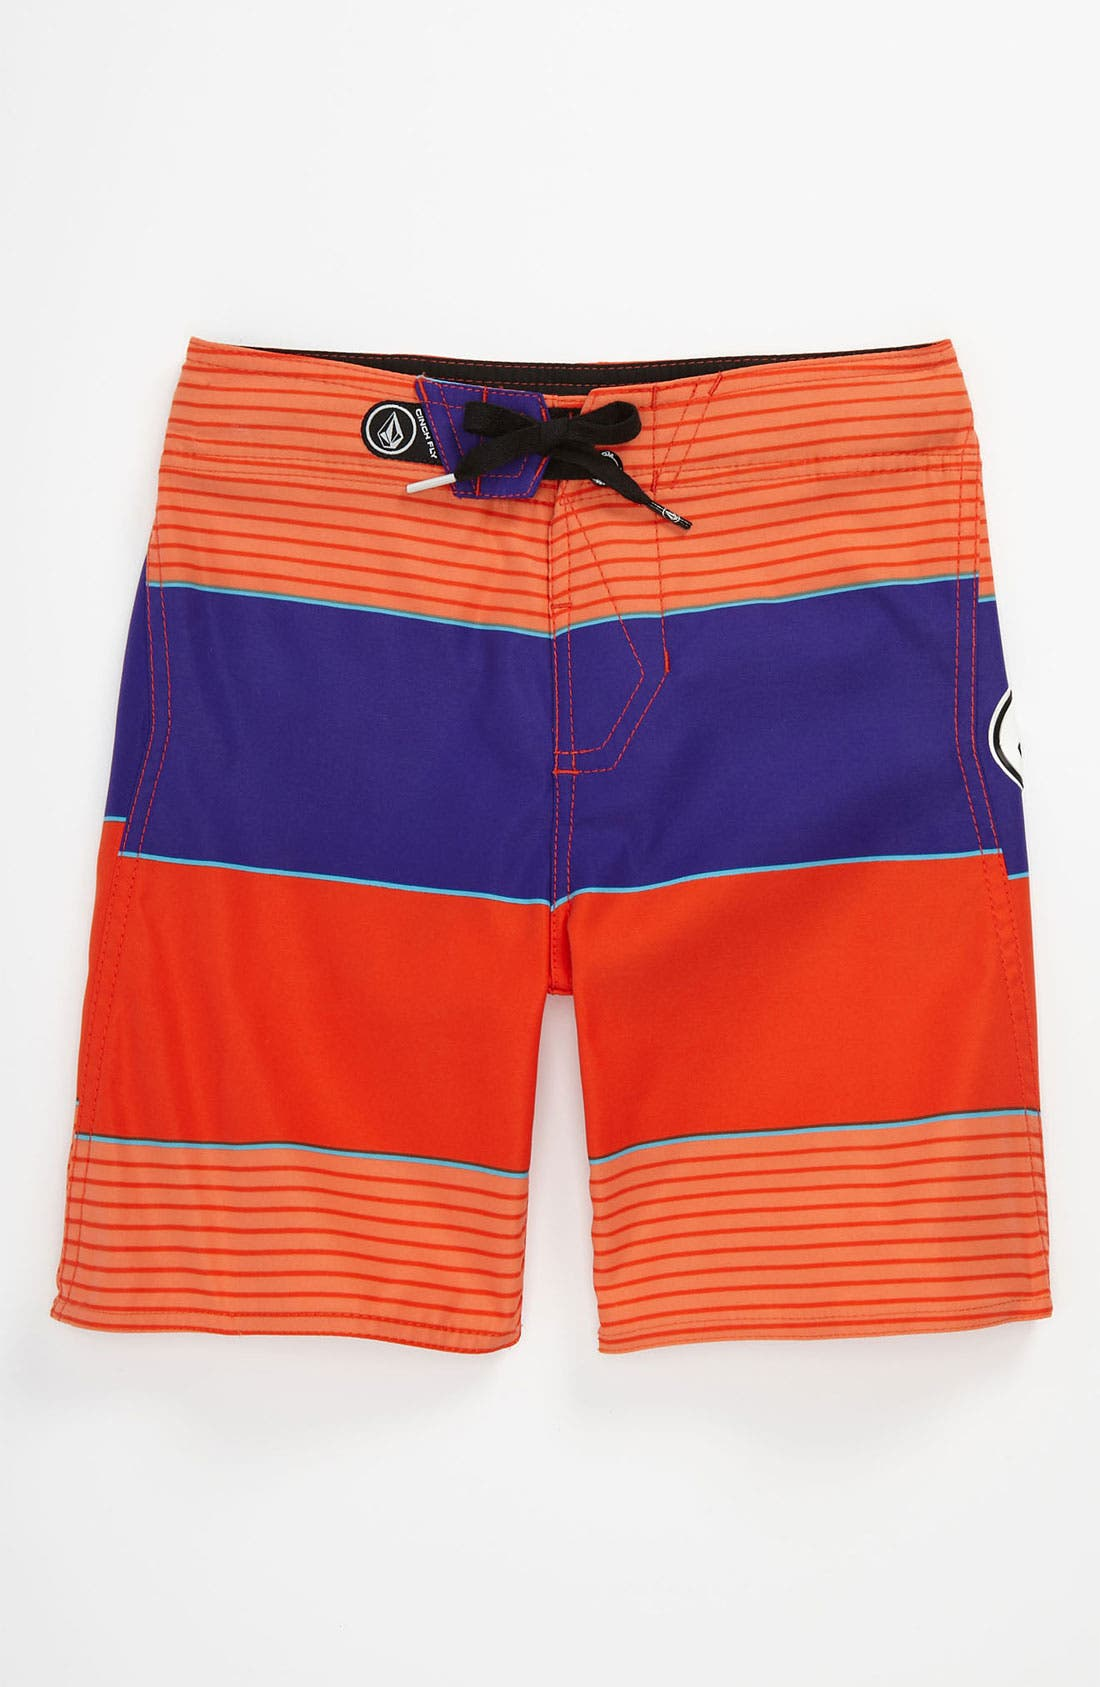 Alternate Image 1 Selected - Volcom 'Maguro' Stripe Board Shorts (Big Boys)